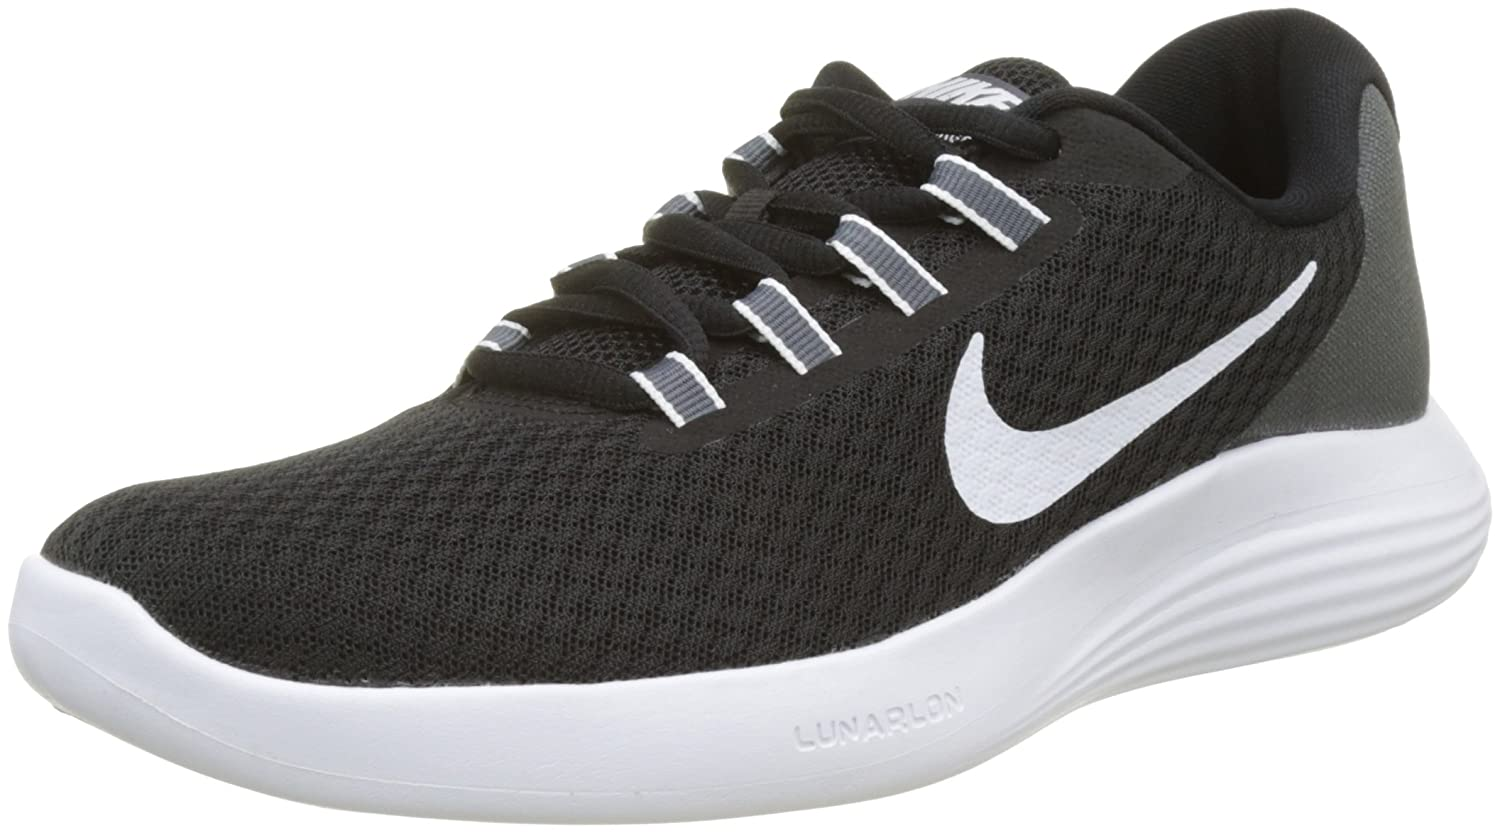 f908a23484 Amazon.com | Nike Lunarconverge Womens Running Trainers 885420 Sneaker  Shoes | Road Running